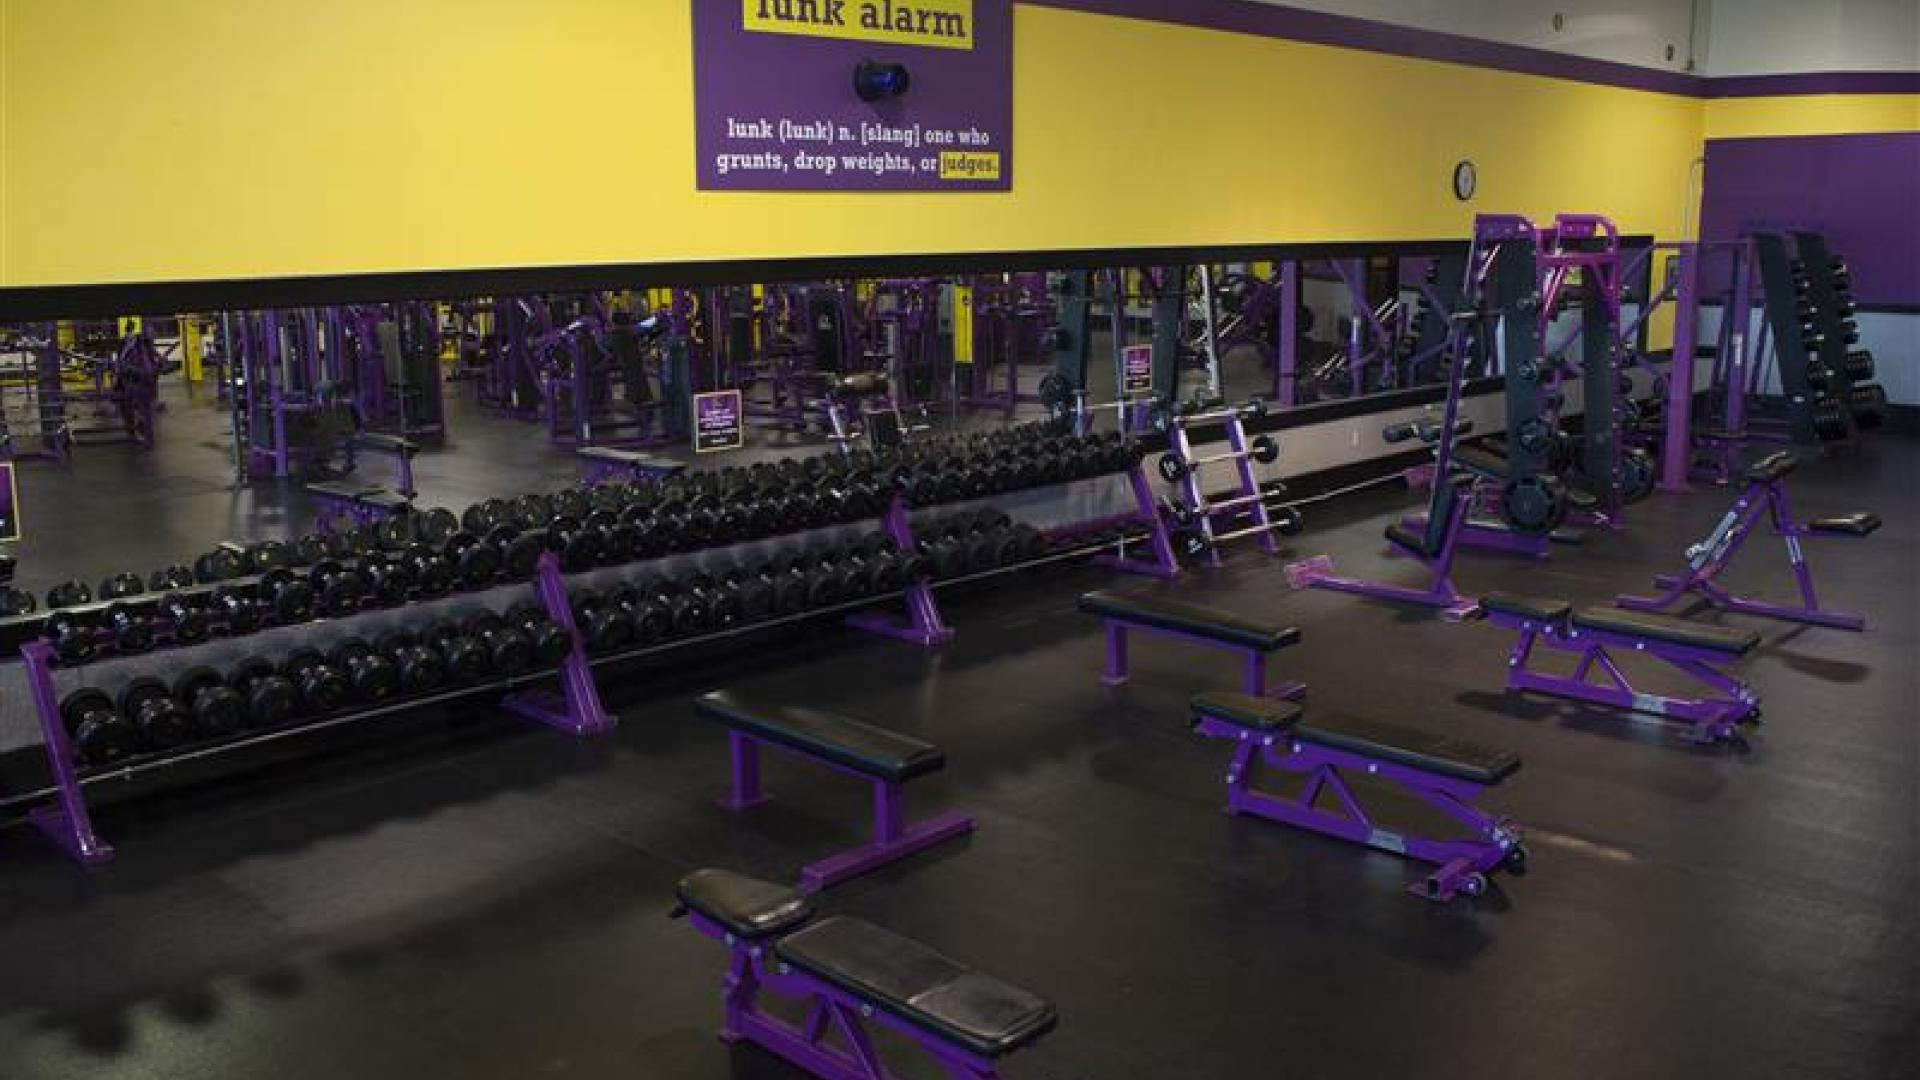 Gym in Ormond Beach FL  910 S Atlantic Ave  Planet Fitness